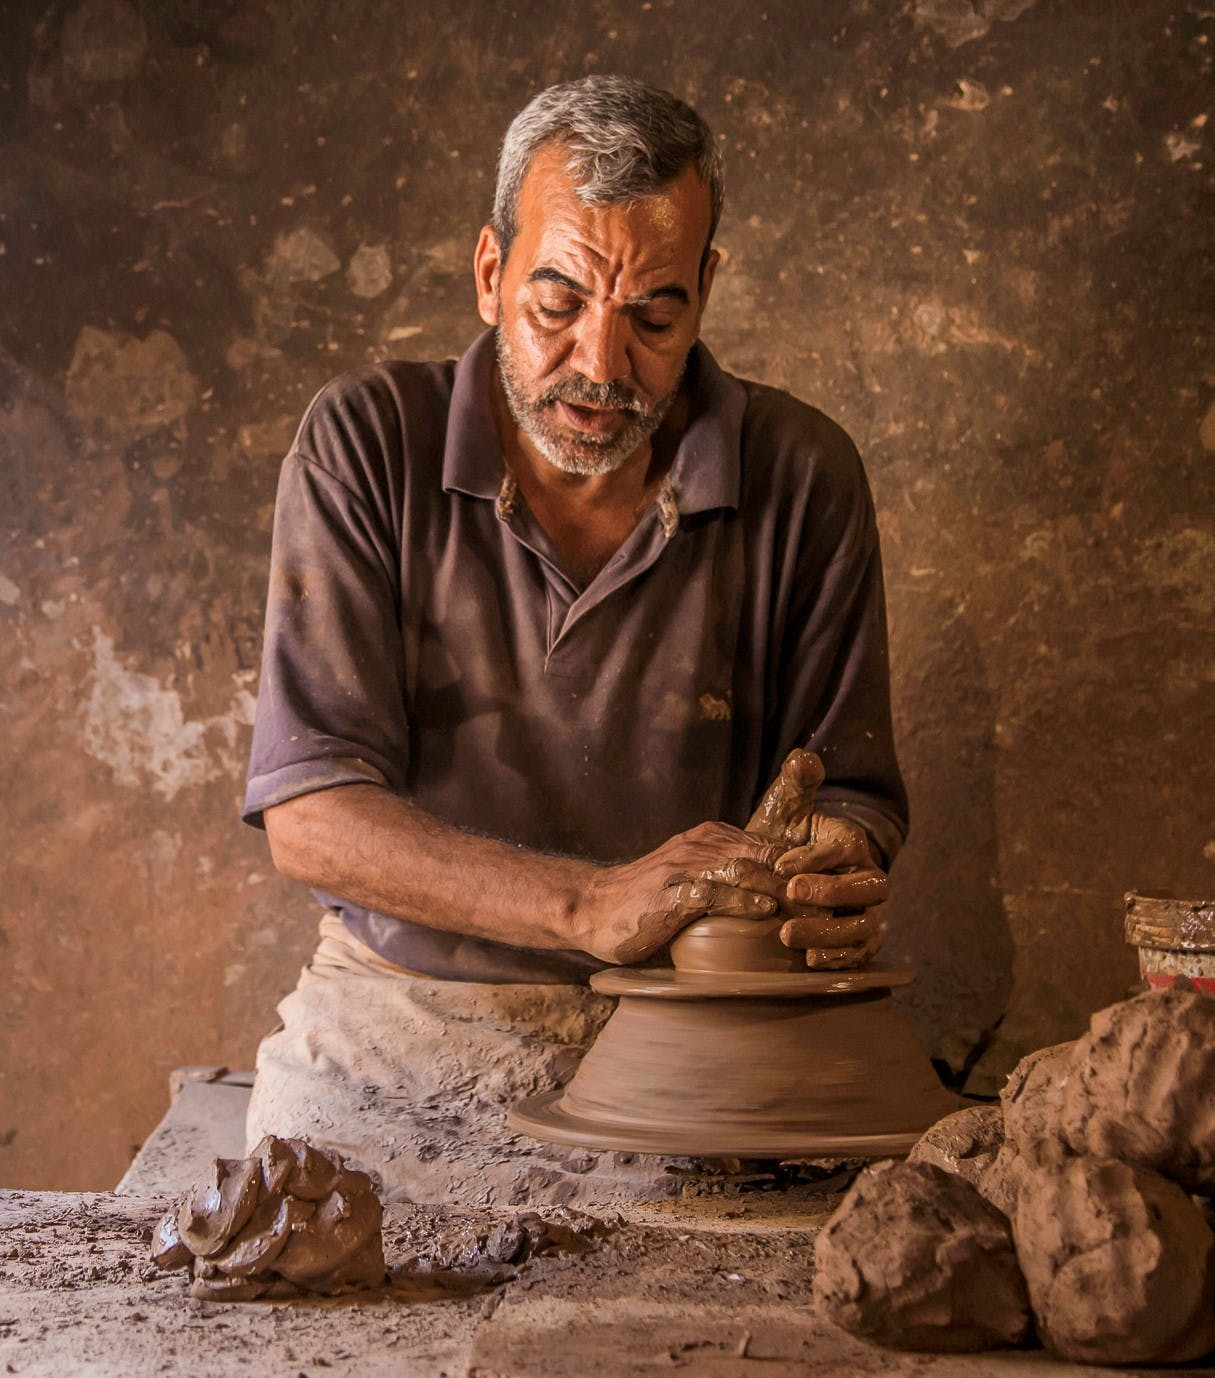 A man making a clay vase with his hands